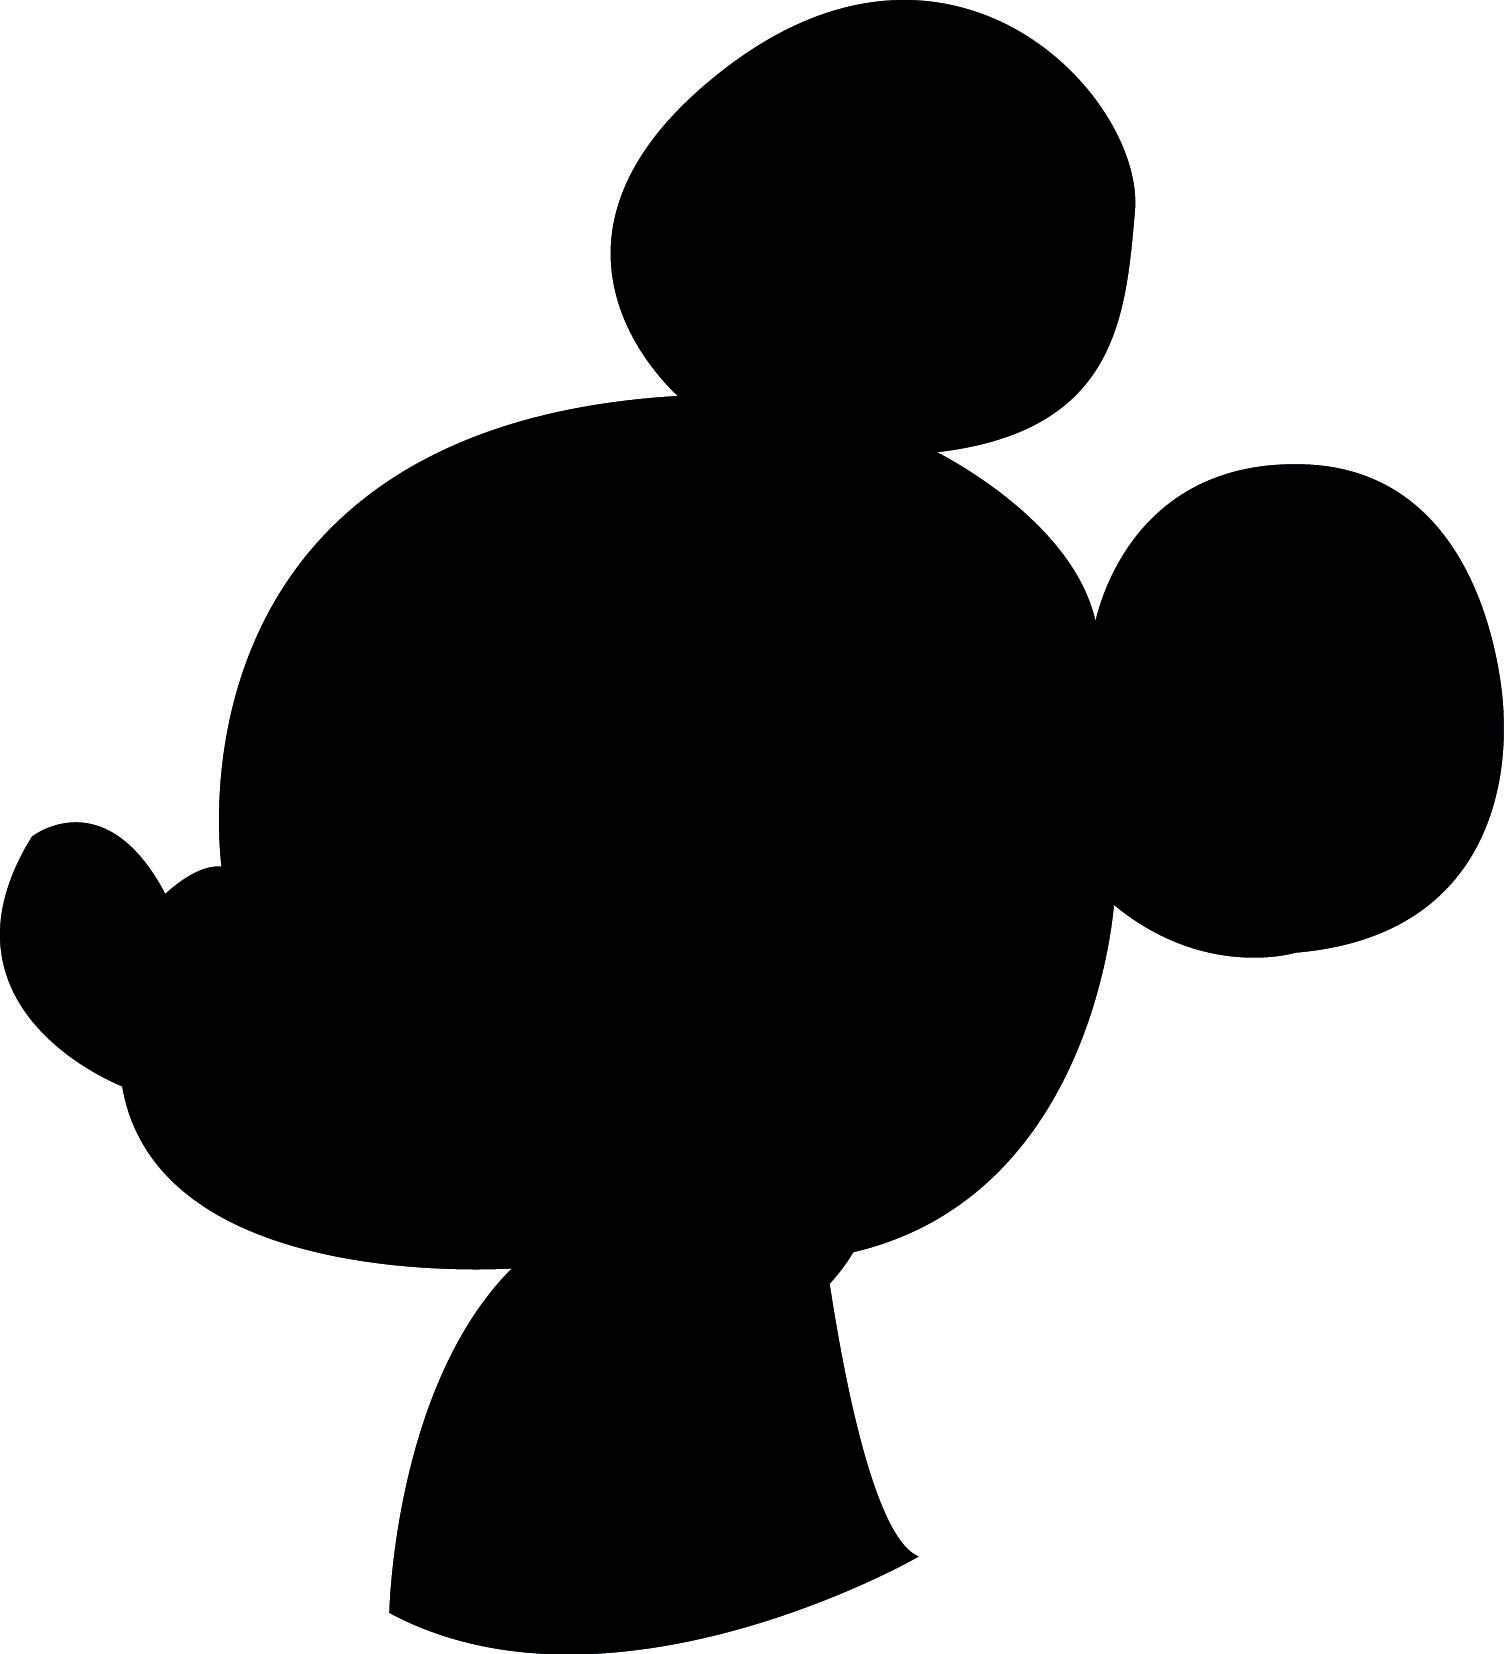 Mickey Mouse Head Silhouette Printable | www.galleryhip.com - The ...